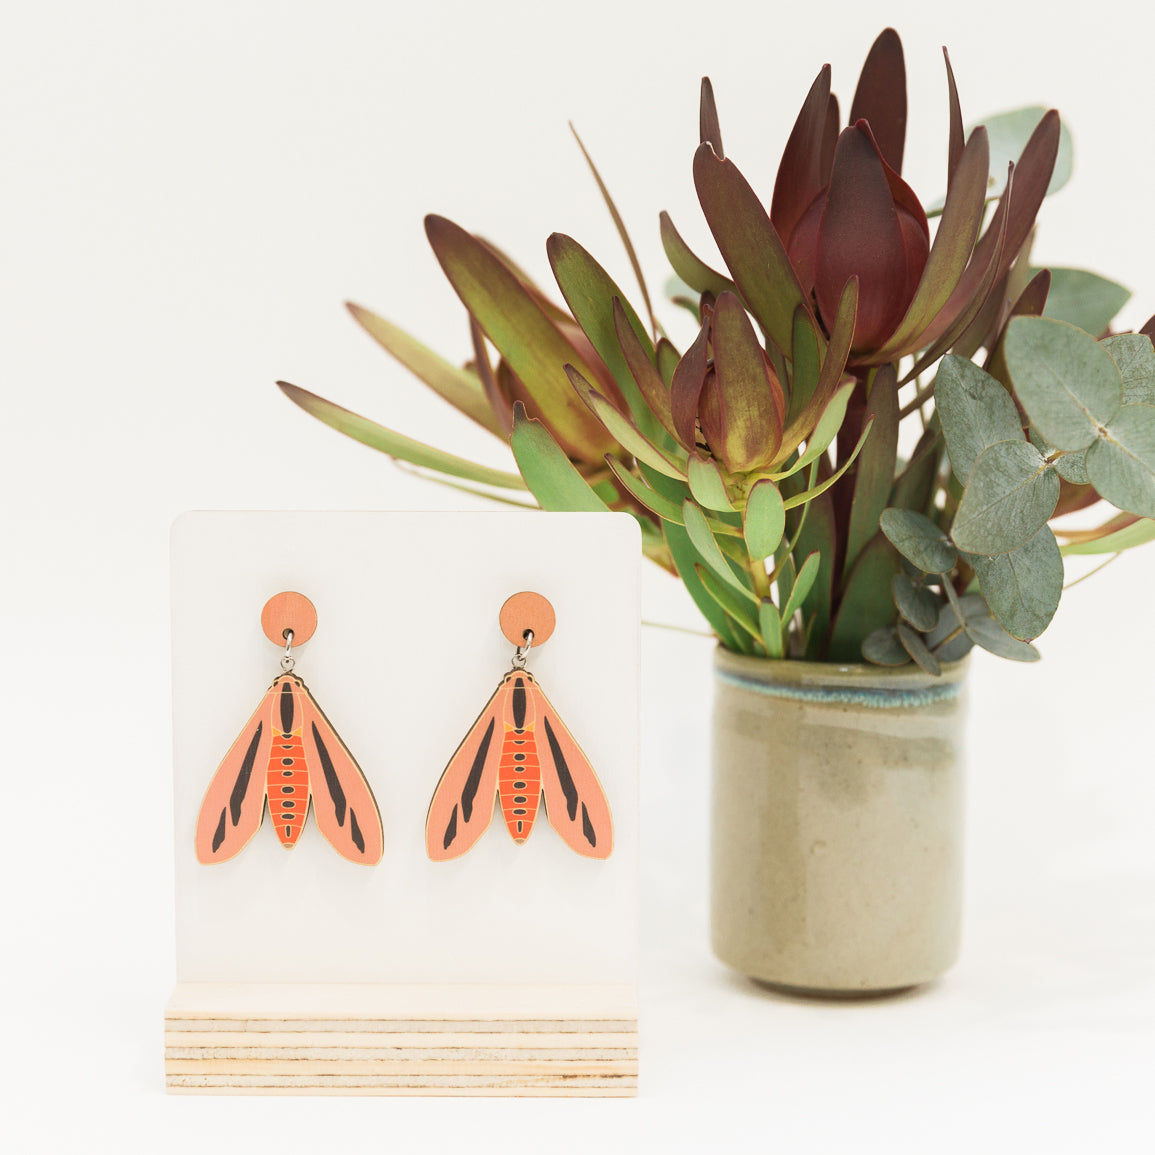 Creatonotos gangis pink Australian made moth earrings wooden jewellery